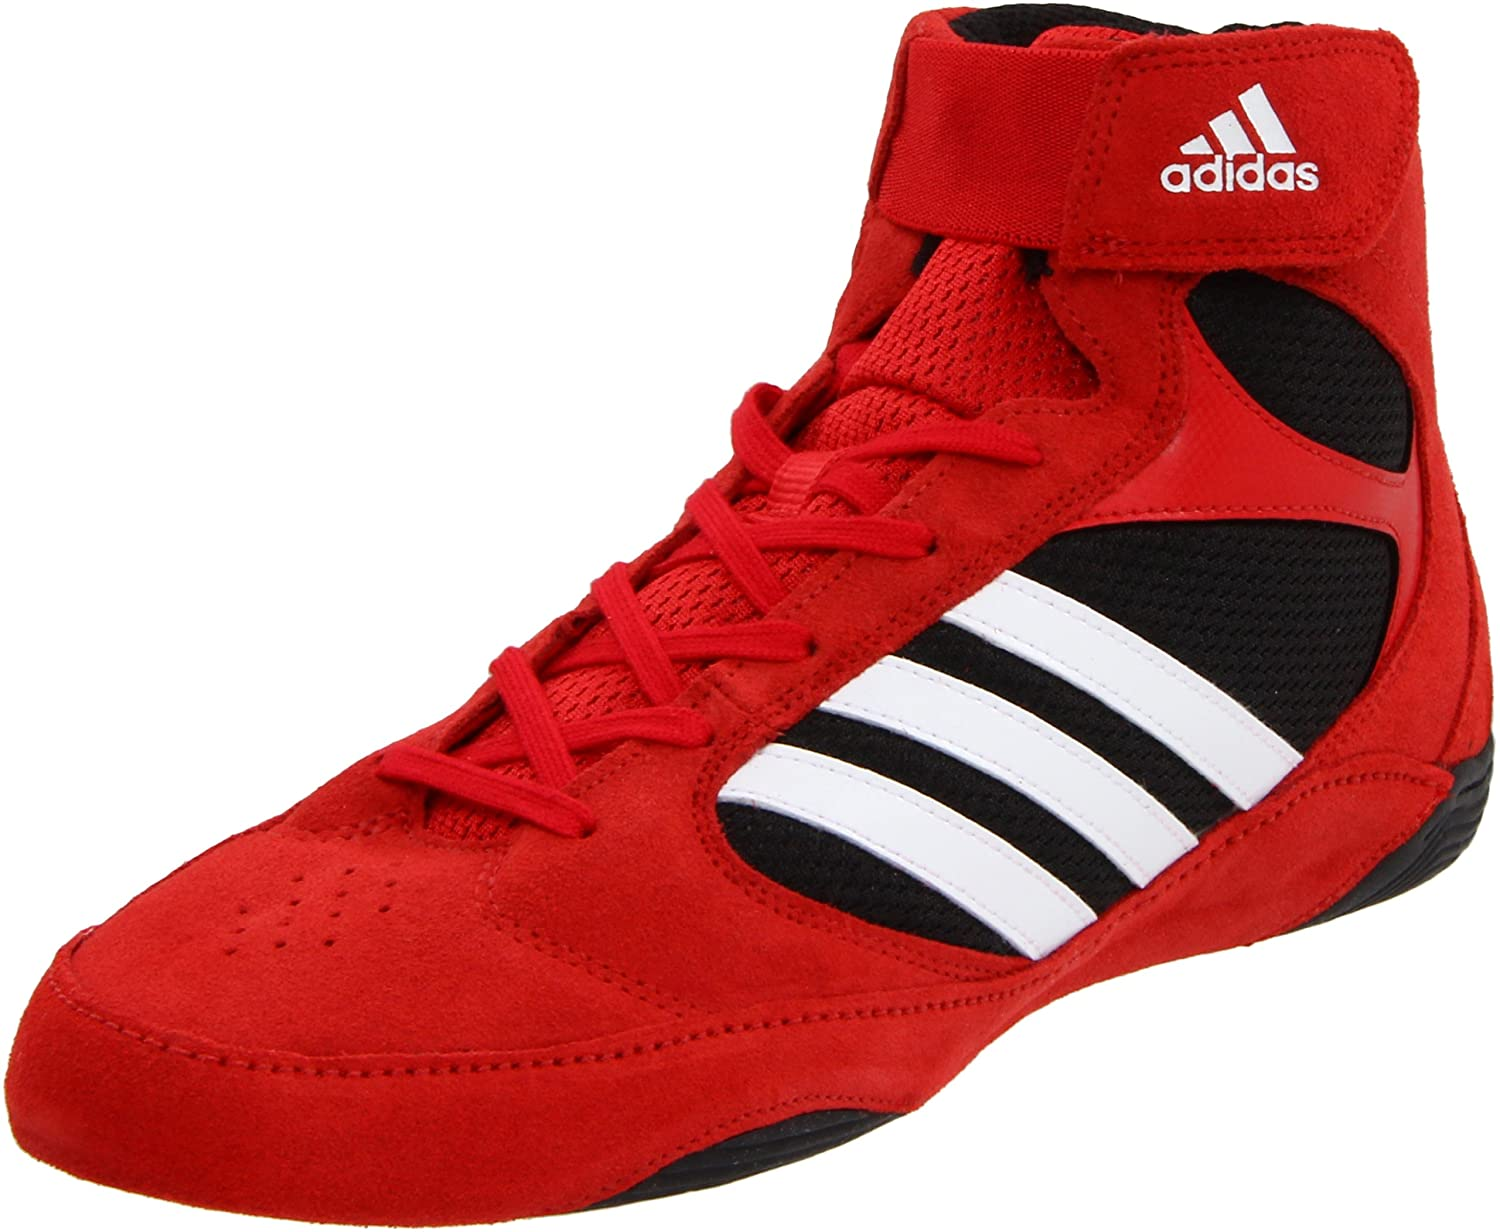 adidas Pretereo.2 Wrestling Chaussures, collégial Royal/Blanc/Noir, 11 D US